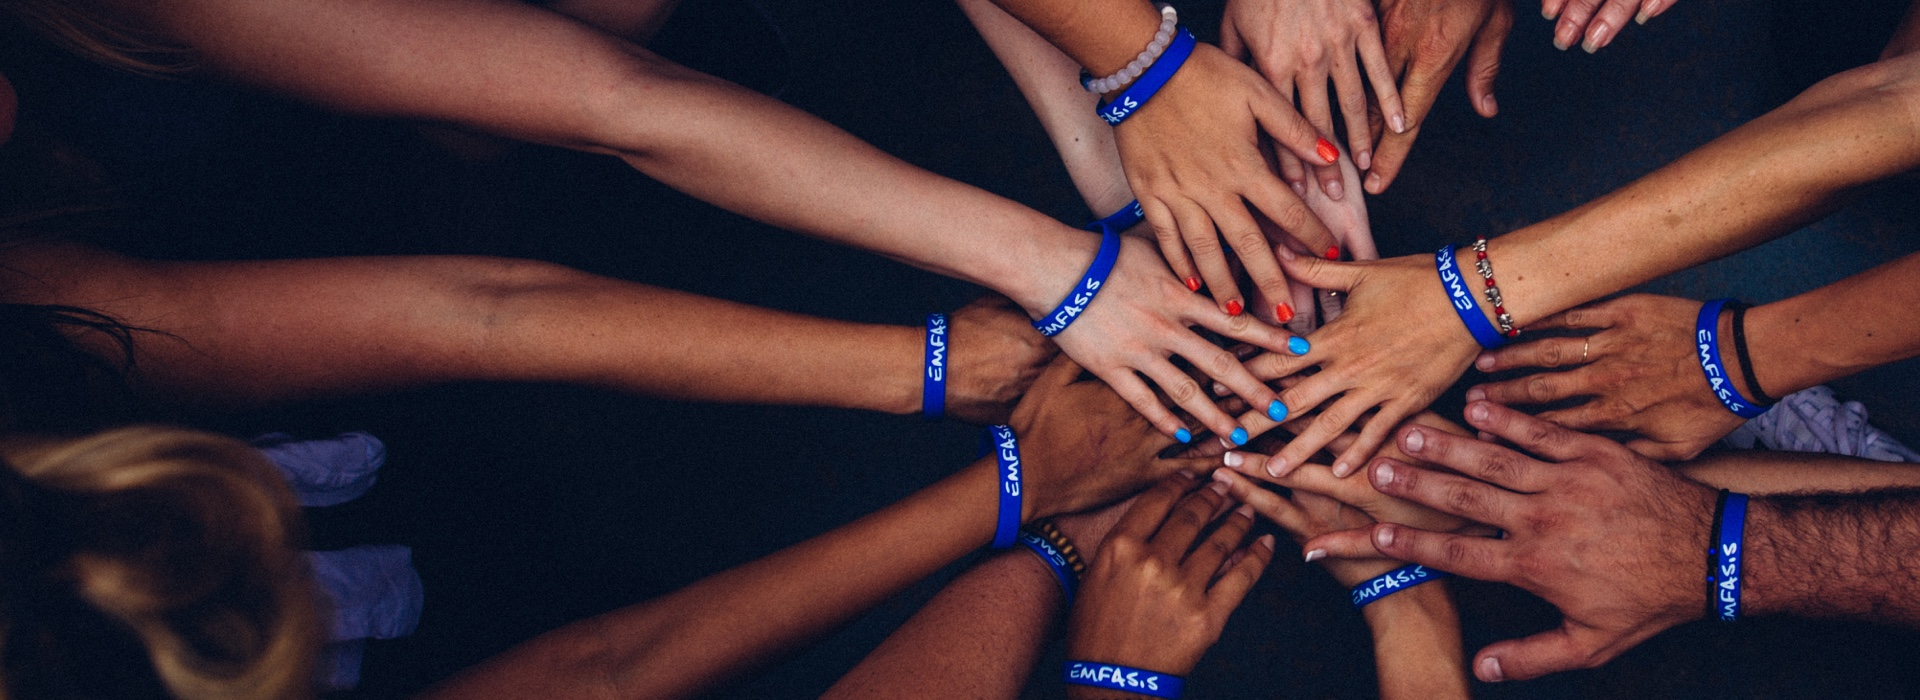 How To Raise Charitable Funds Via Facebook: The Easiest Way